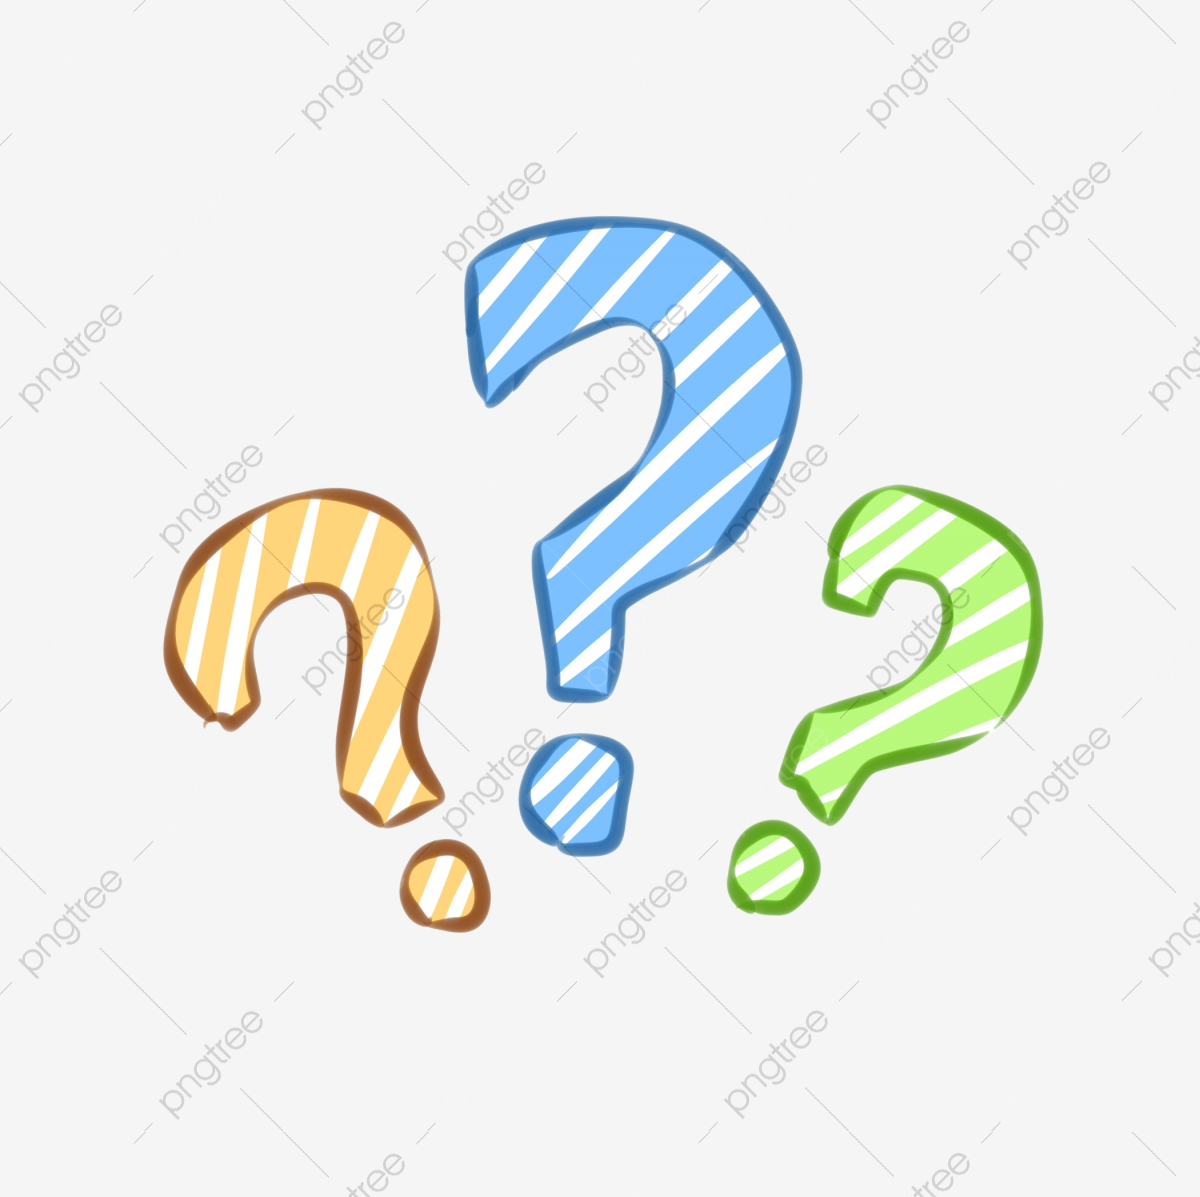 Tricolor Minimalist Style Question Mark Cute Cartoon Anime Png